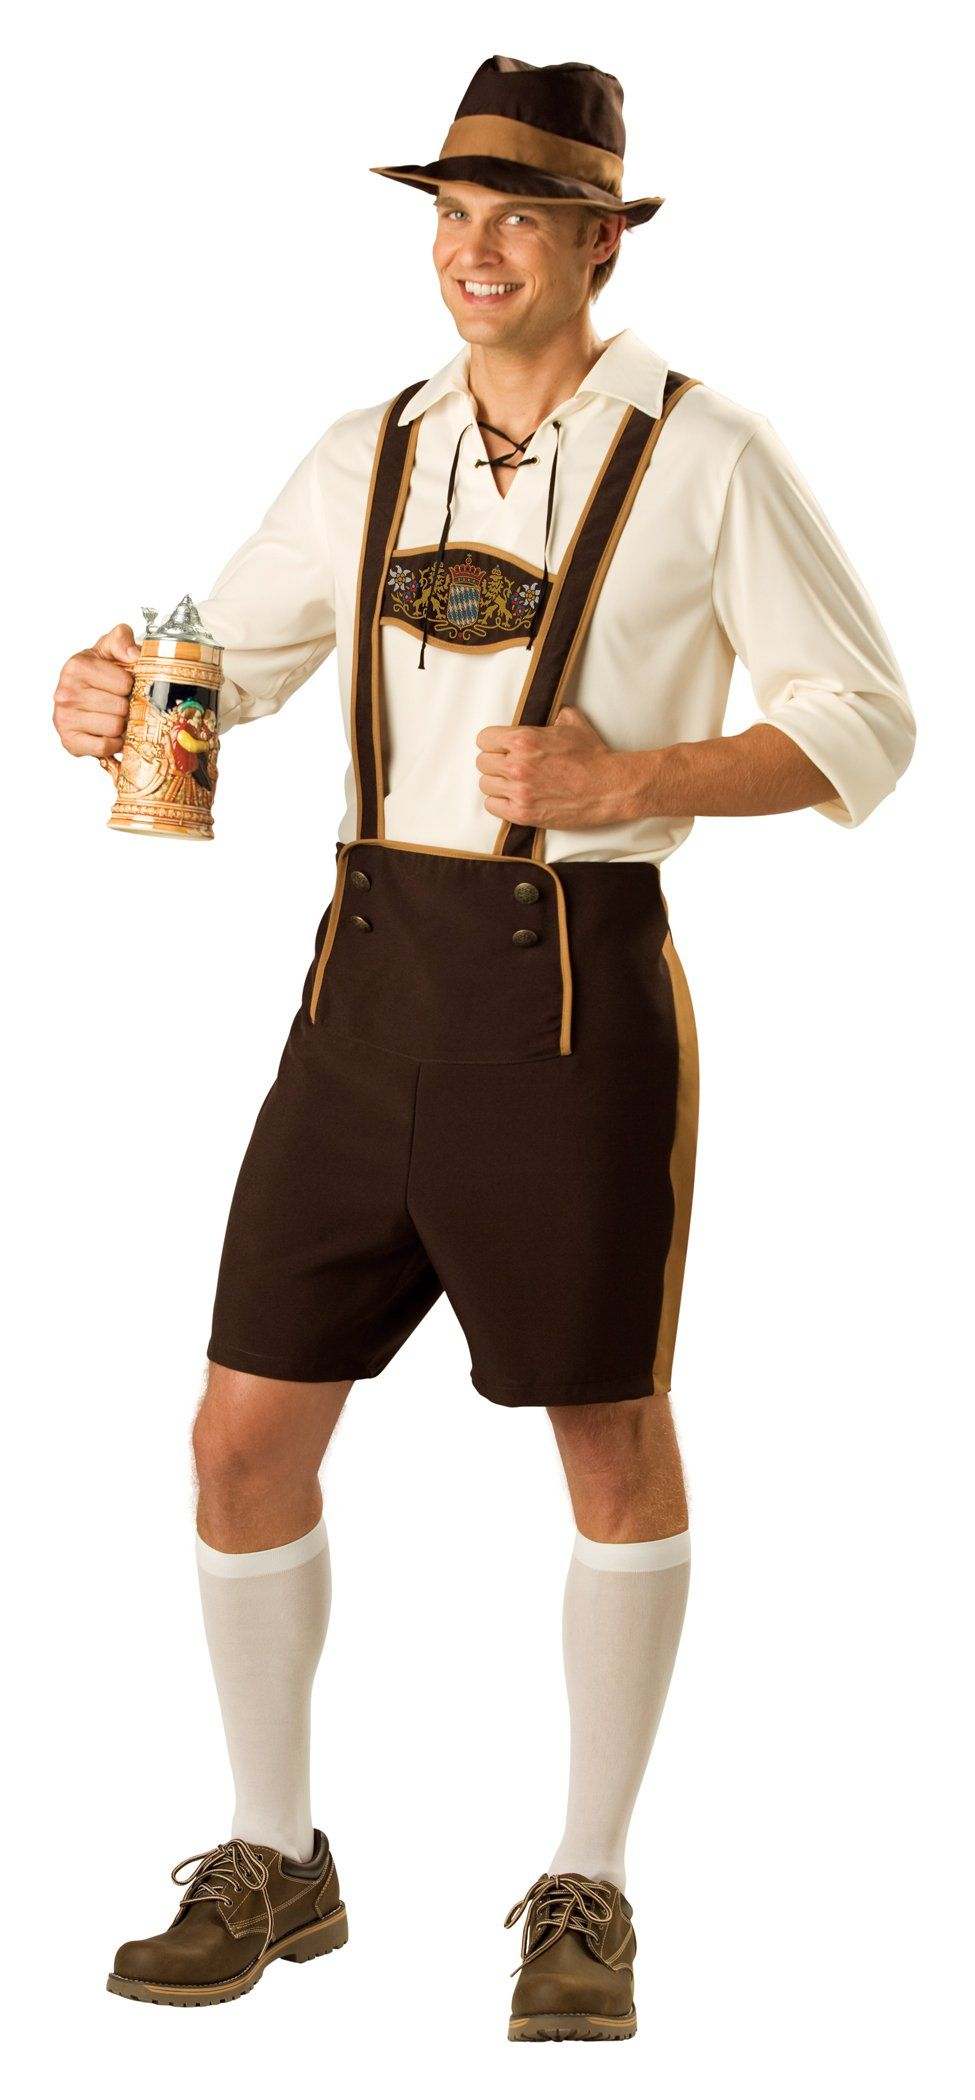 6151daacf7b Amazon.com: InCharacter Costumes, Men's Bavarian Guy Costume with ...